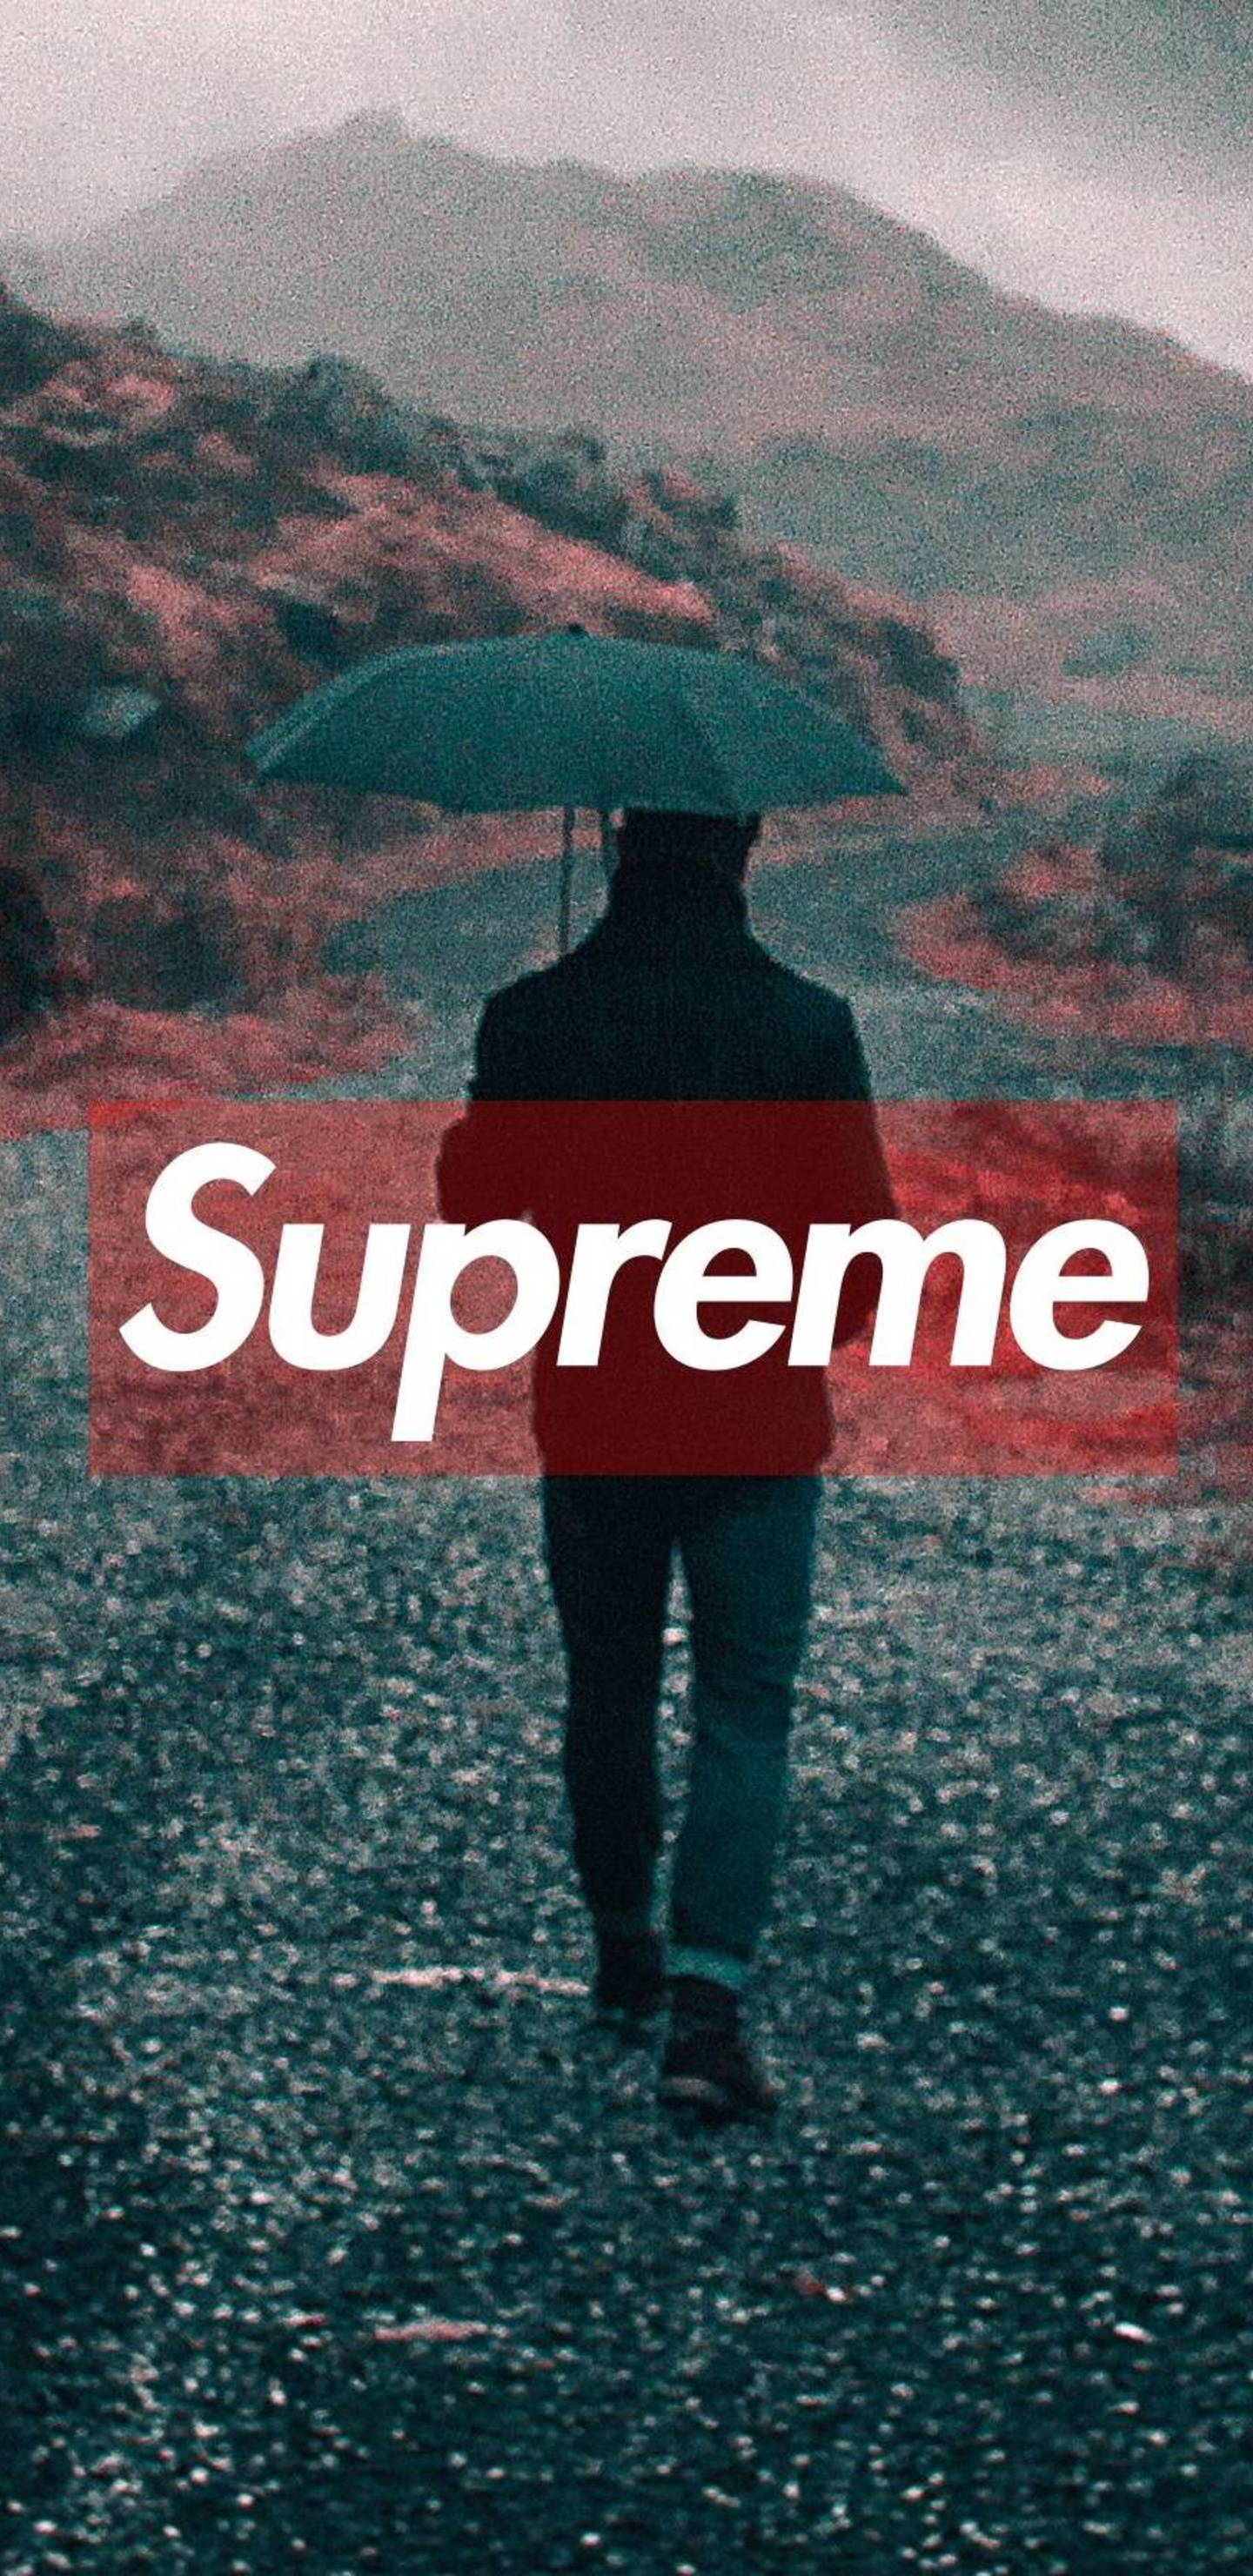 Supreme Galaxy Wallpapers - Wallpaper Cave